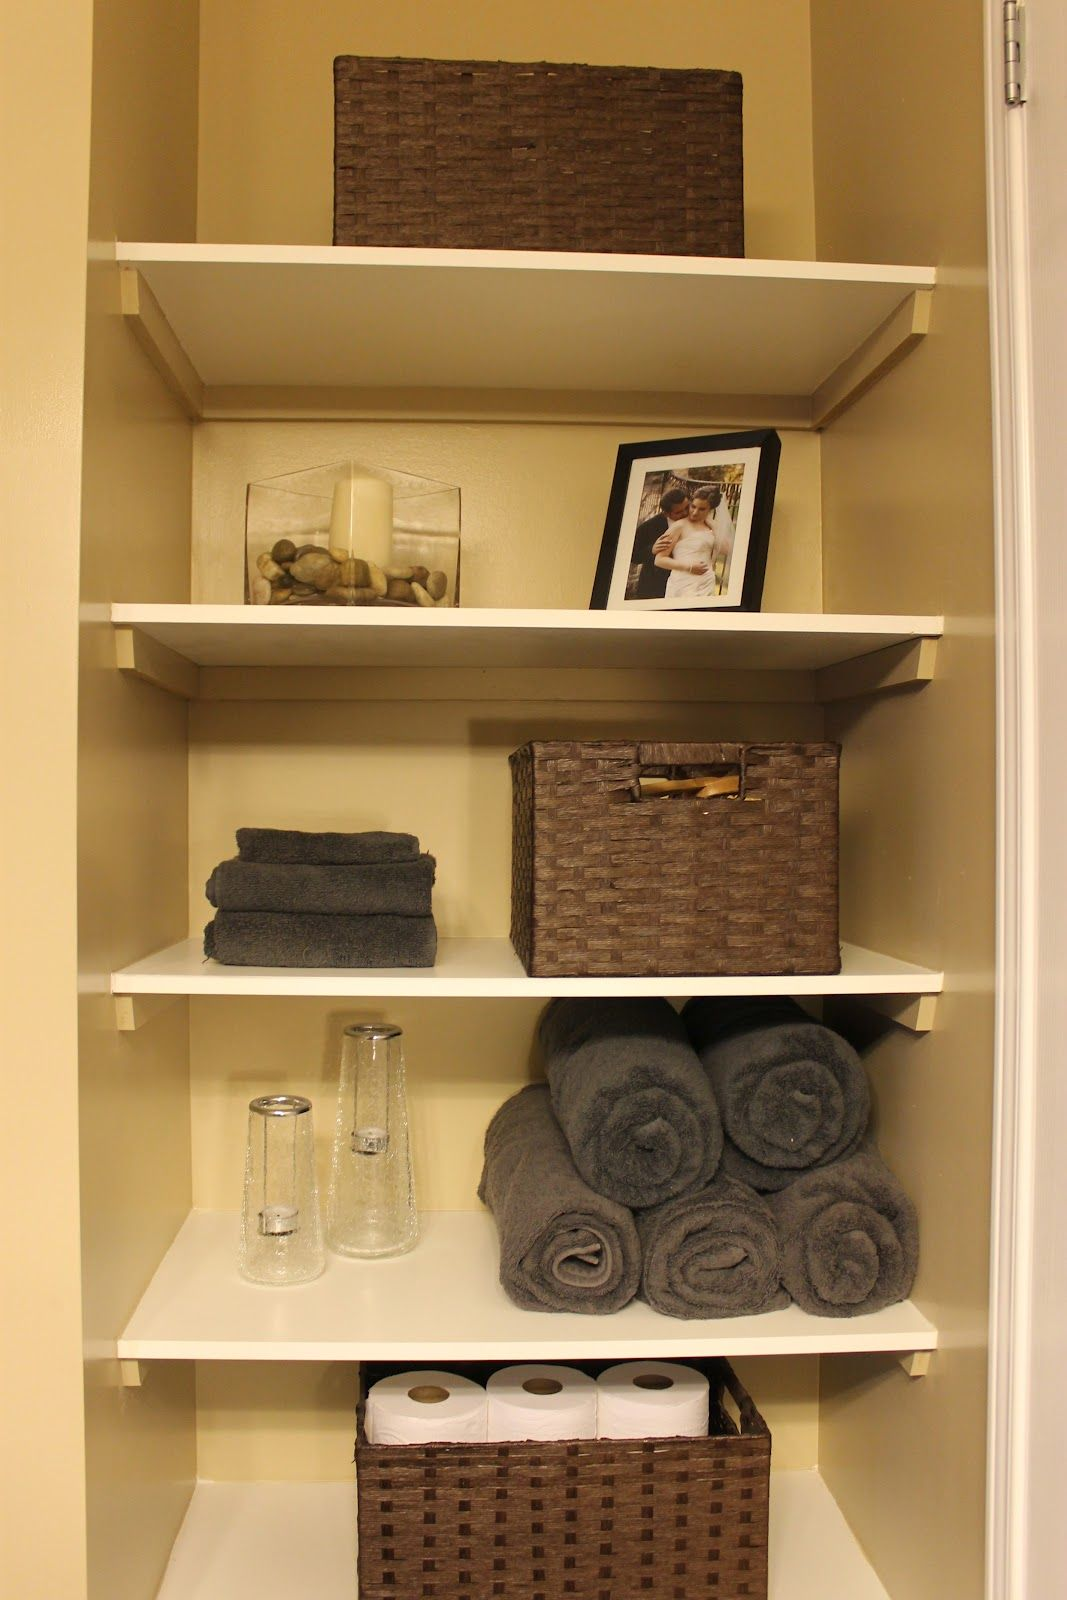 diy organizing open shelving in a bathroom for the home pinterest open shelving. Black Bedroom Furniture Sets. Home Design Ideas